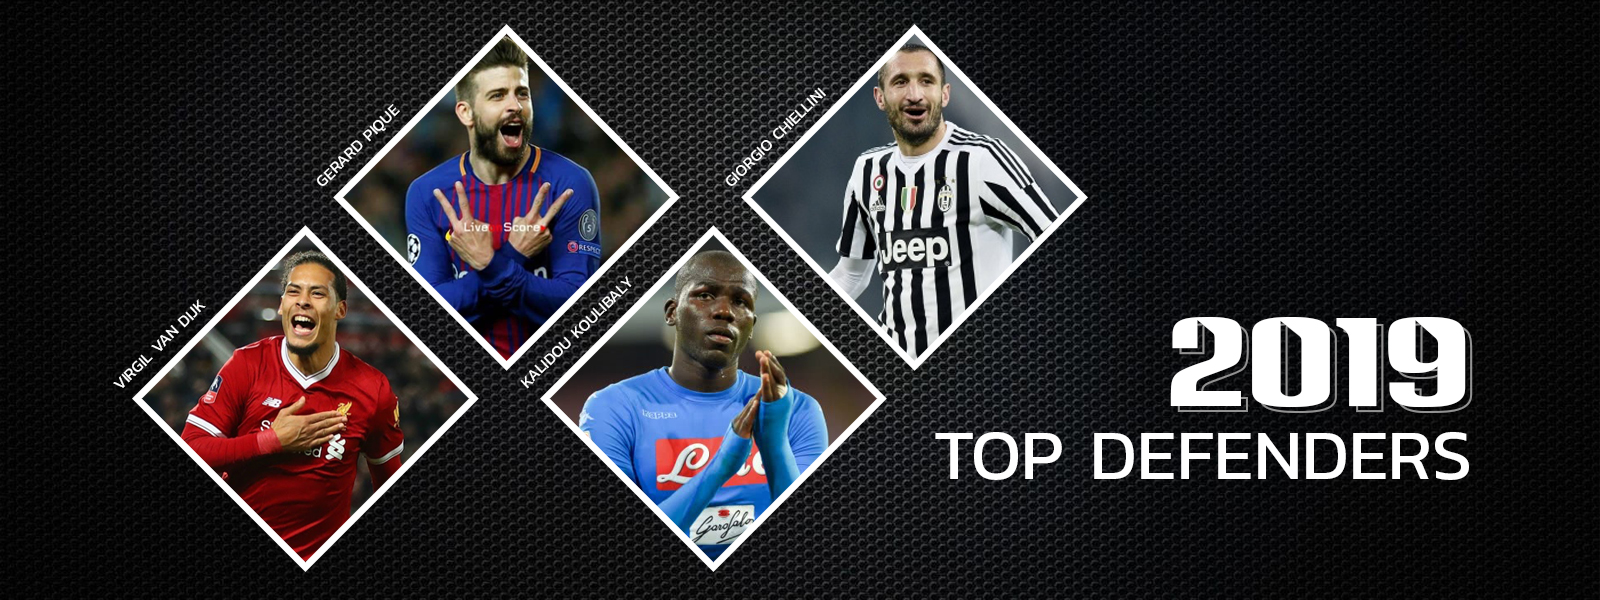 2019/2020 Top Football Defenders in the World